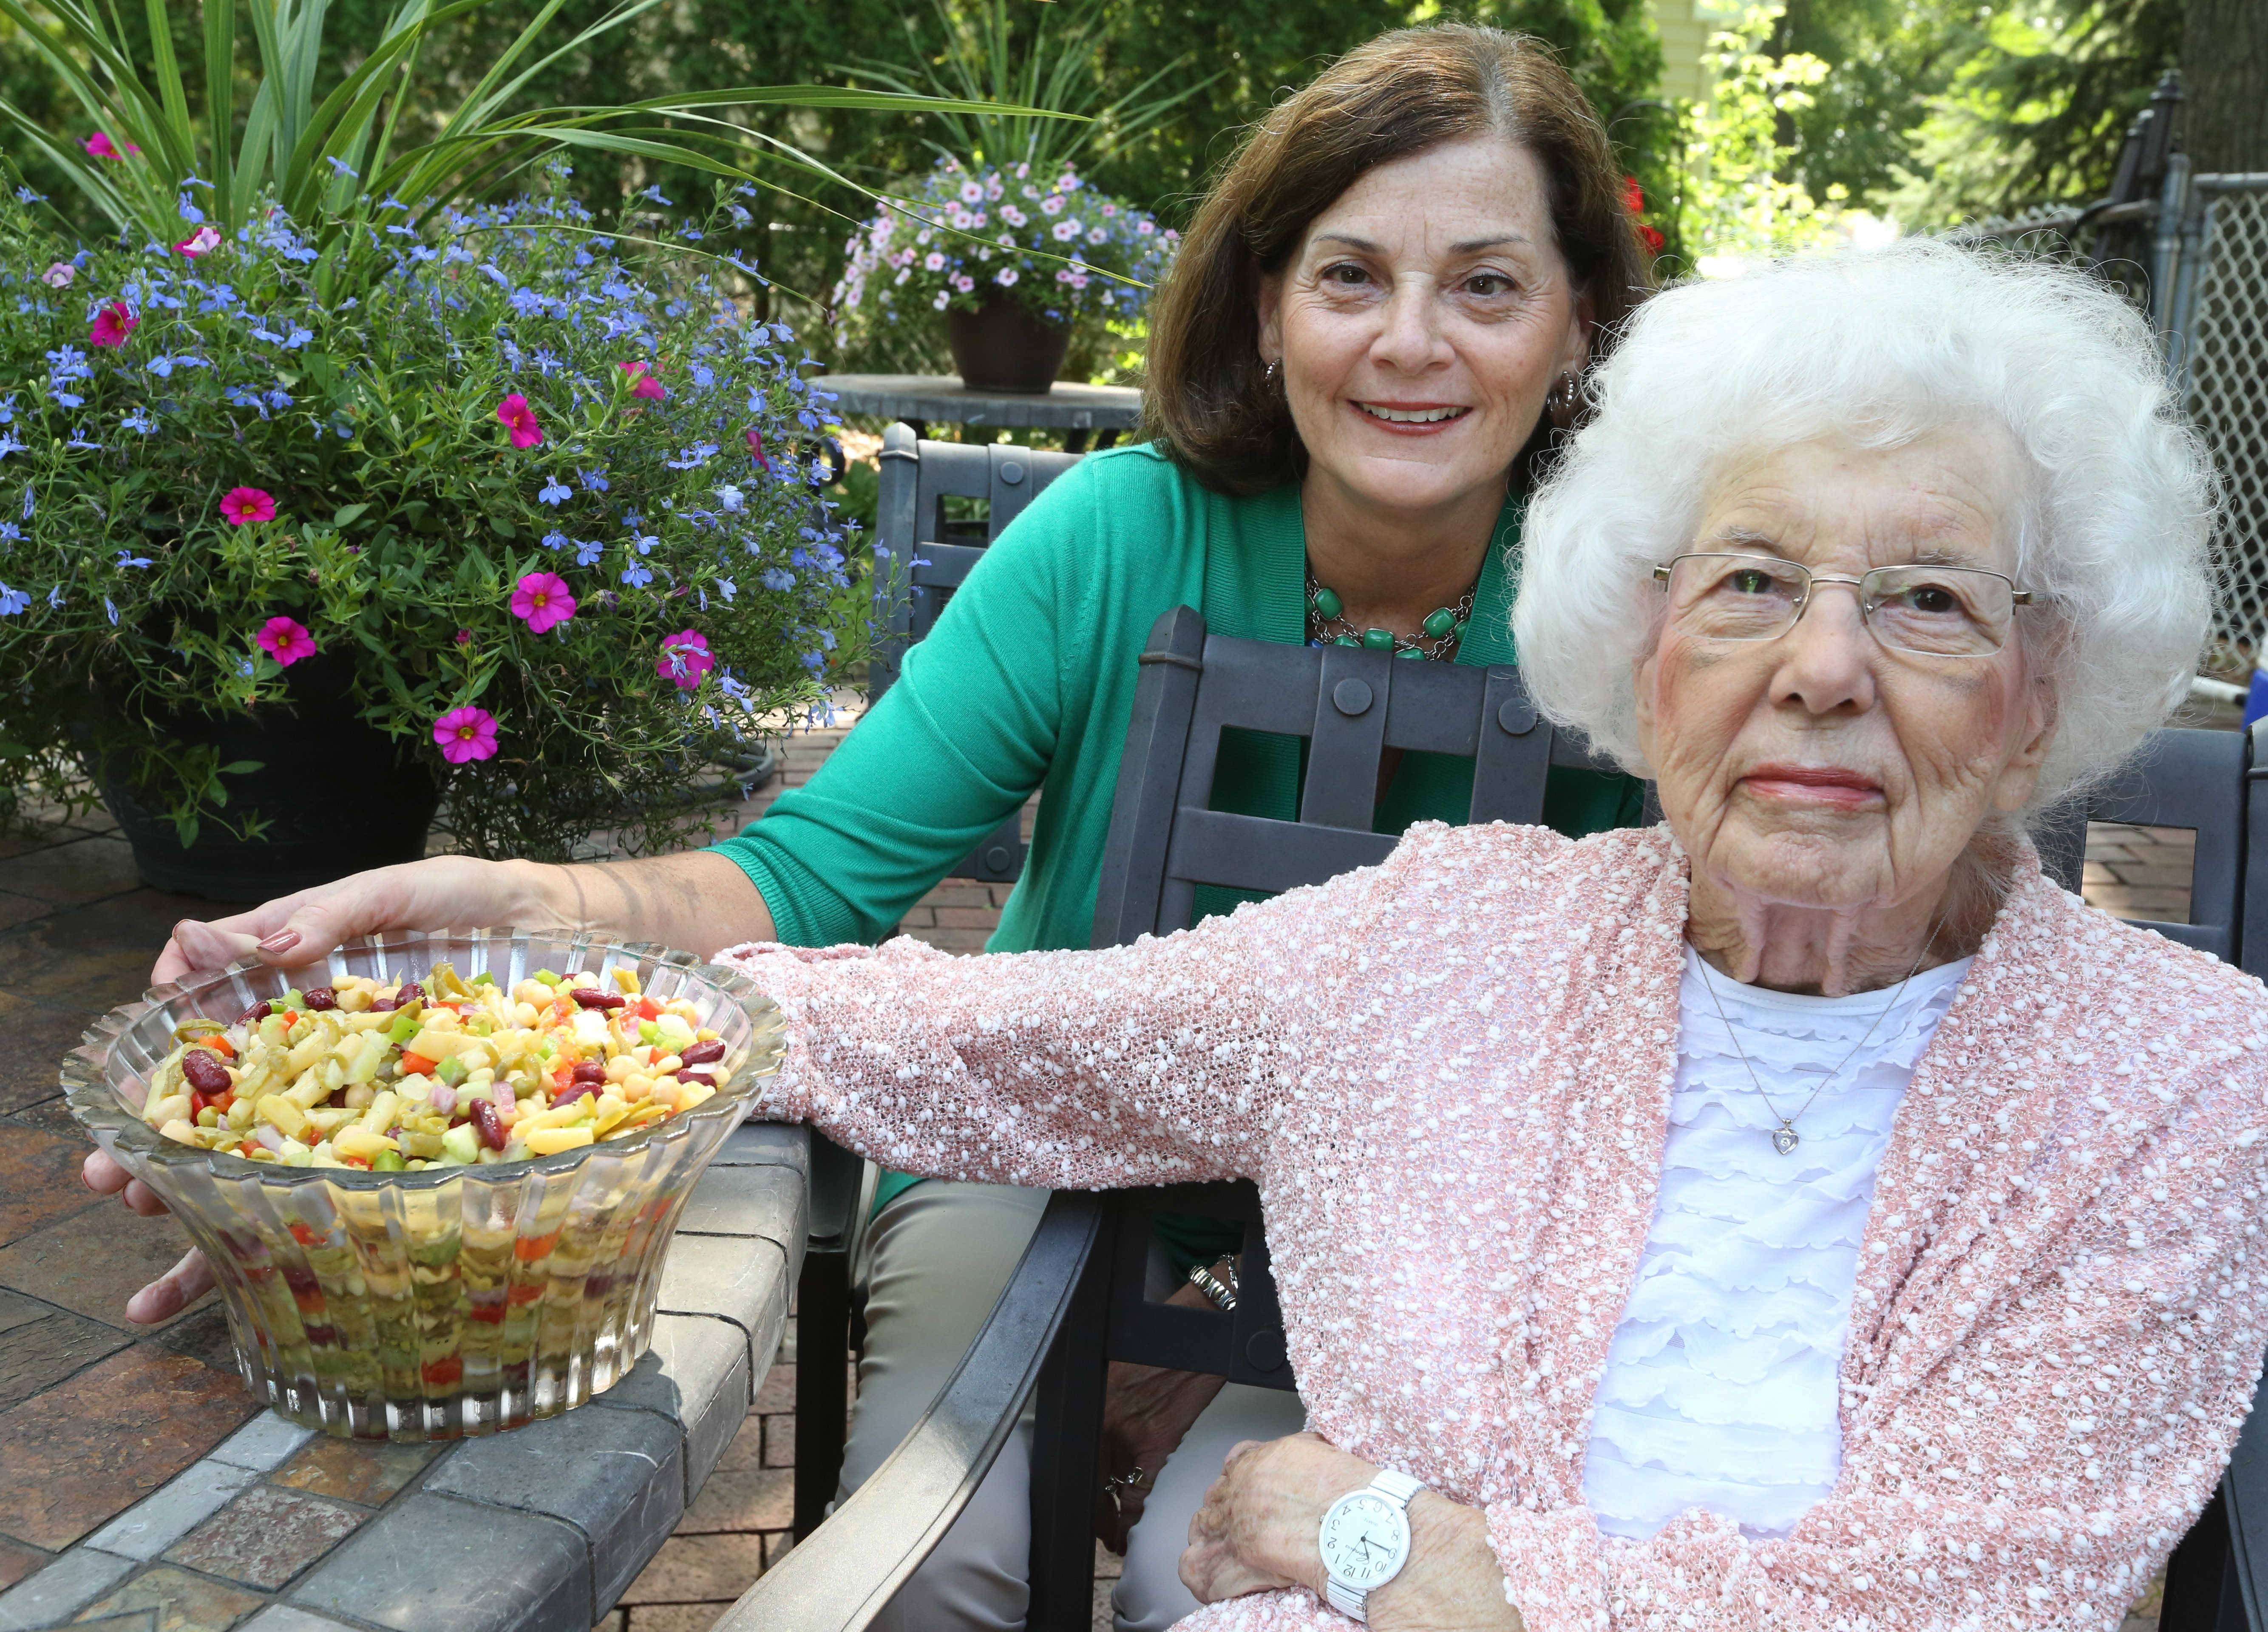 Jill Von Boeckman and her mother, Martha Grossweiler, of Arlington Heights, serve their bean-filled Mom's Vegetable Salad at summer cookouts and potlucks.